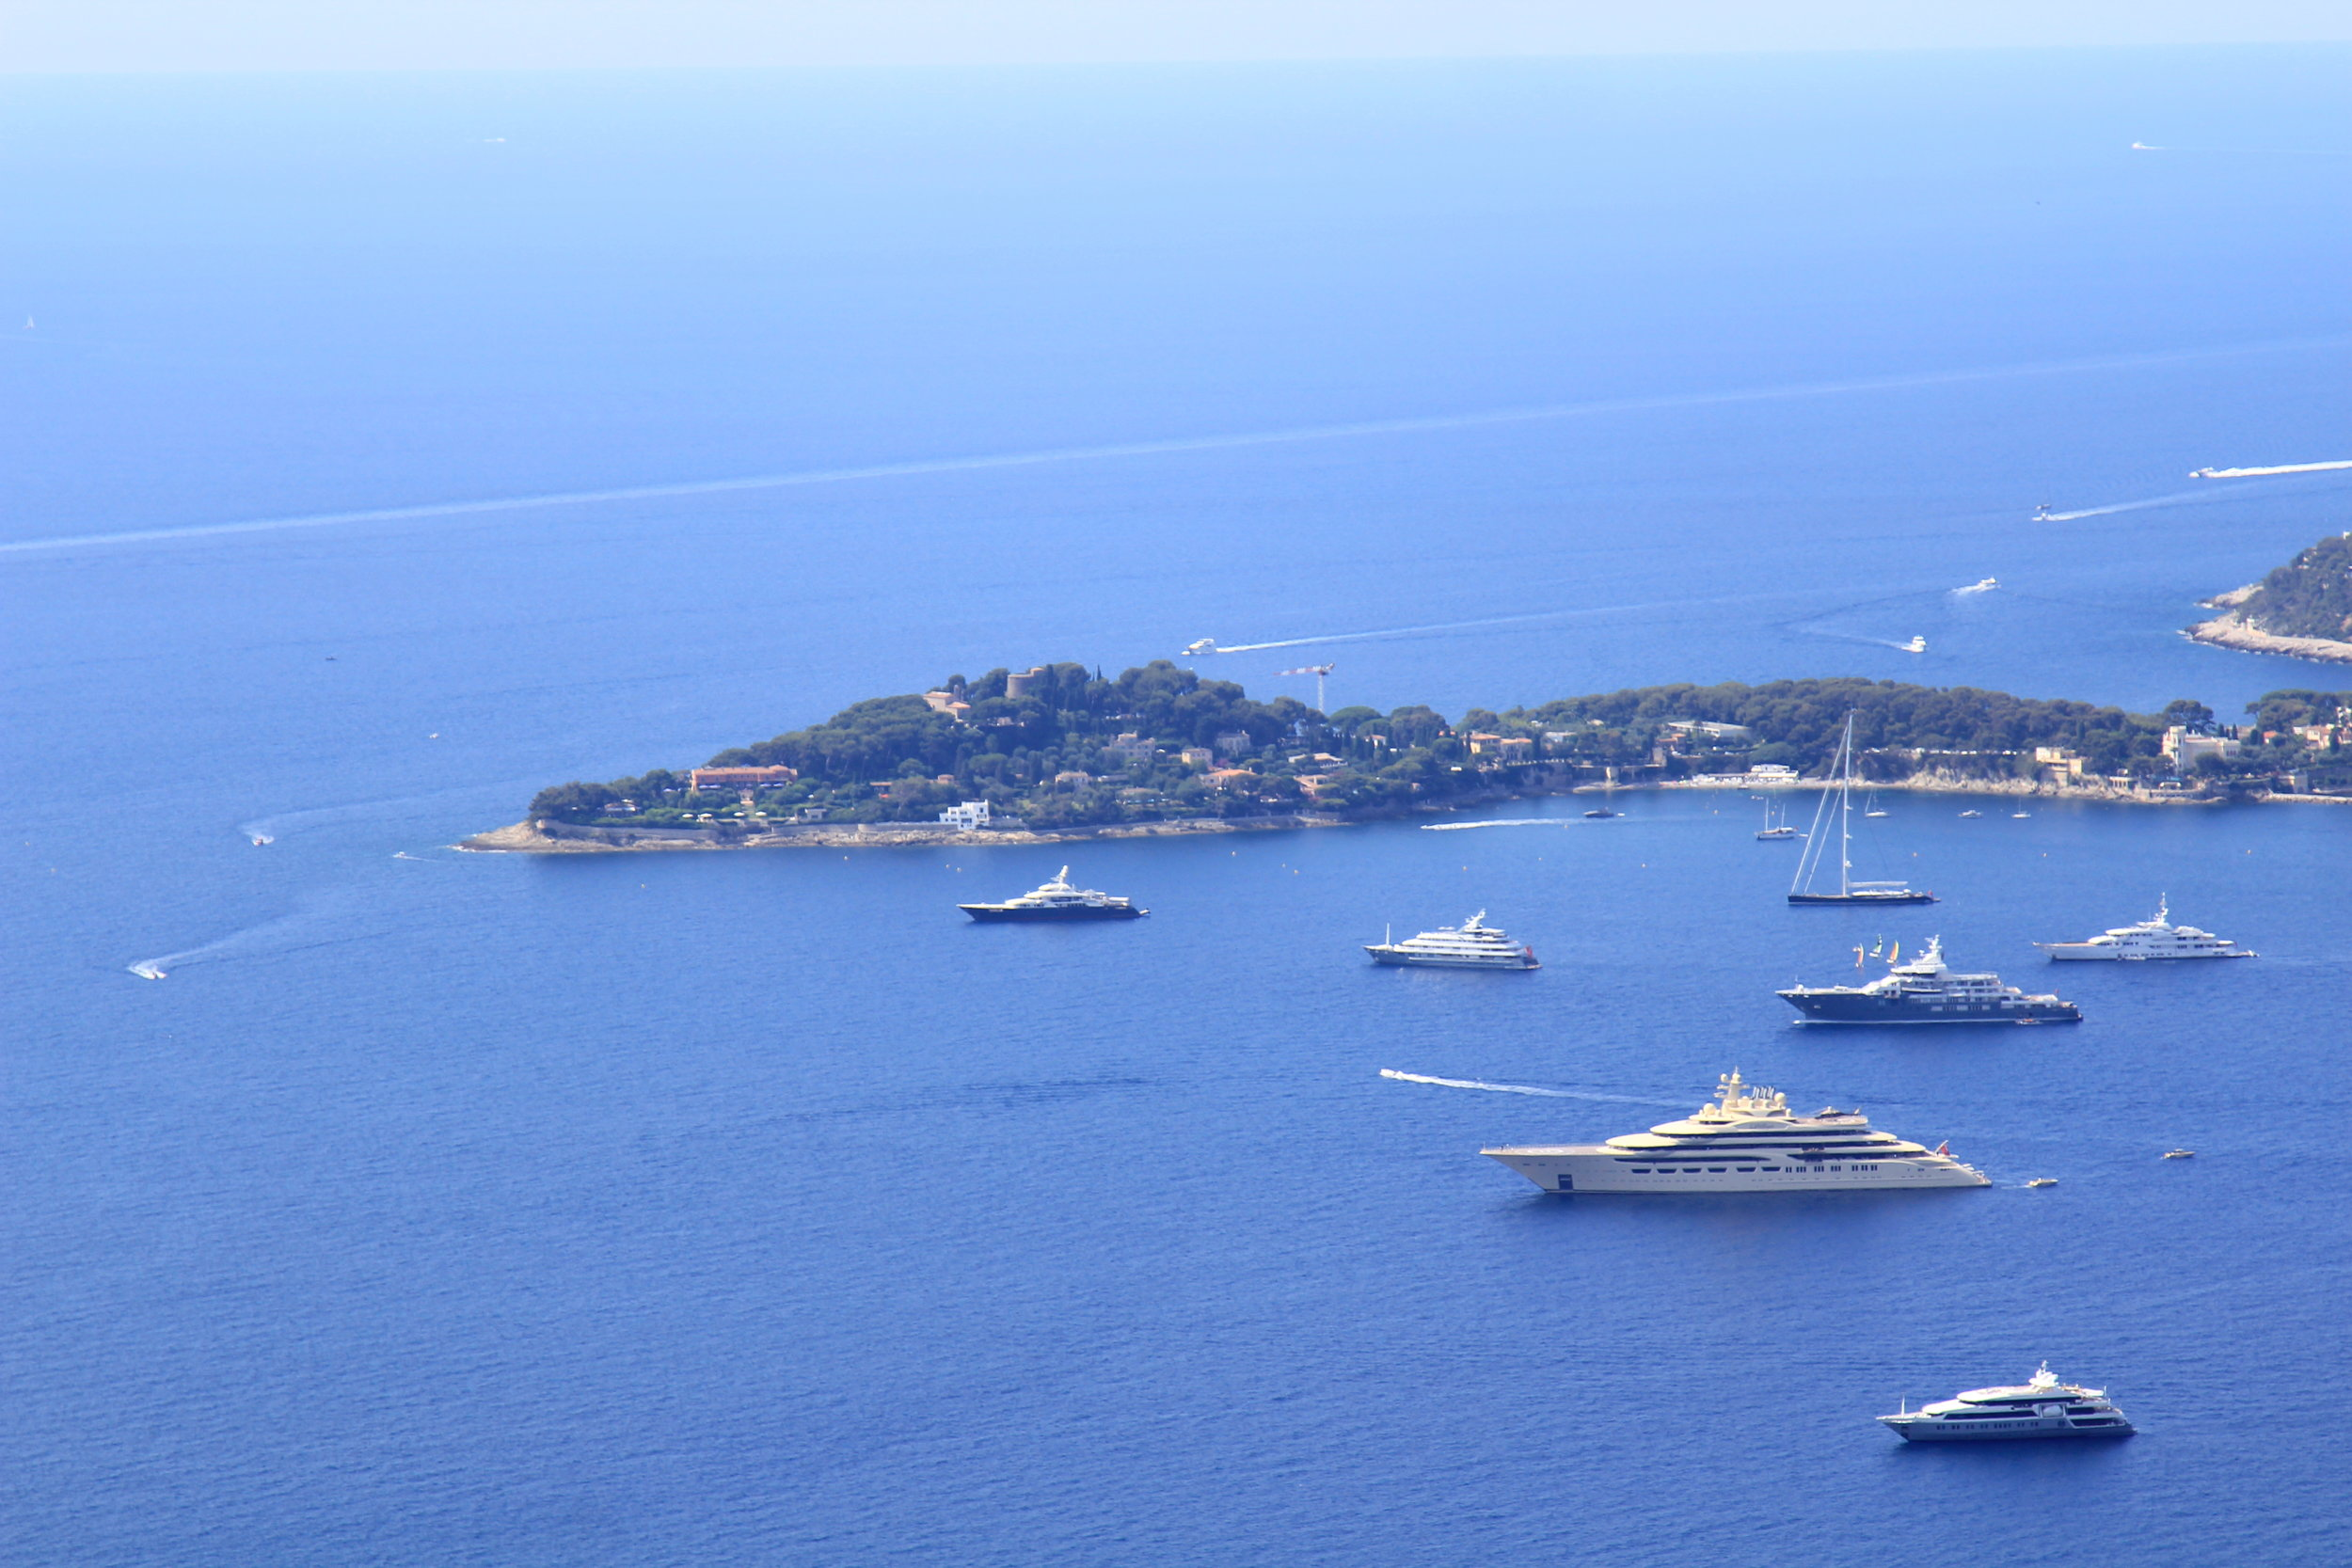 The French Riviera - view from tiny medieval town of Eze